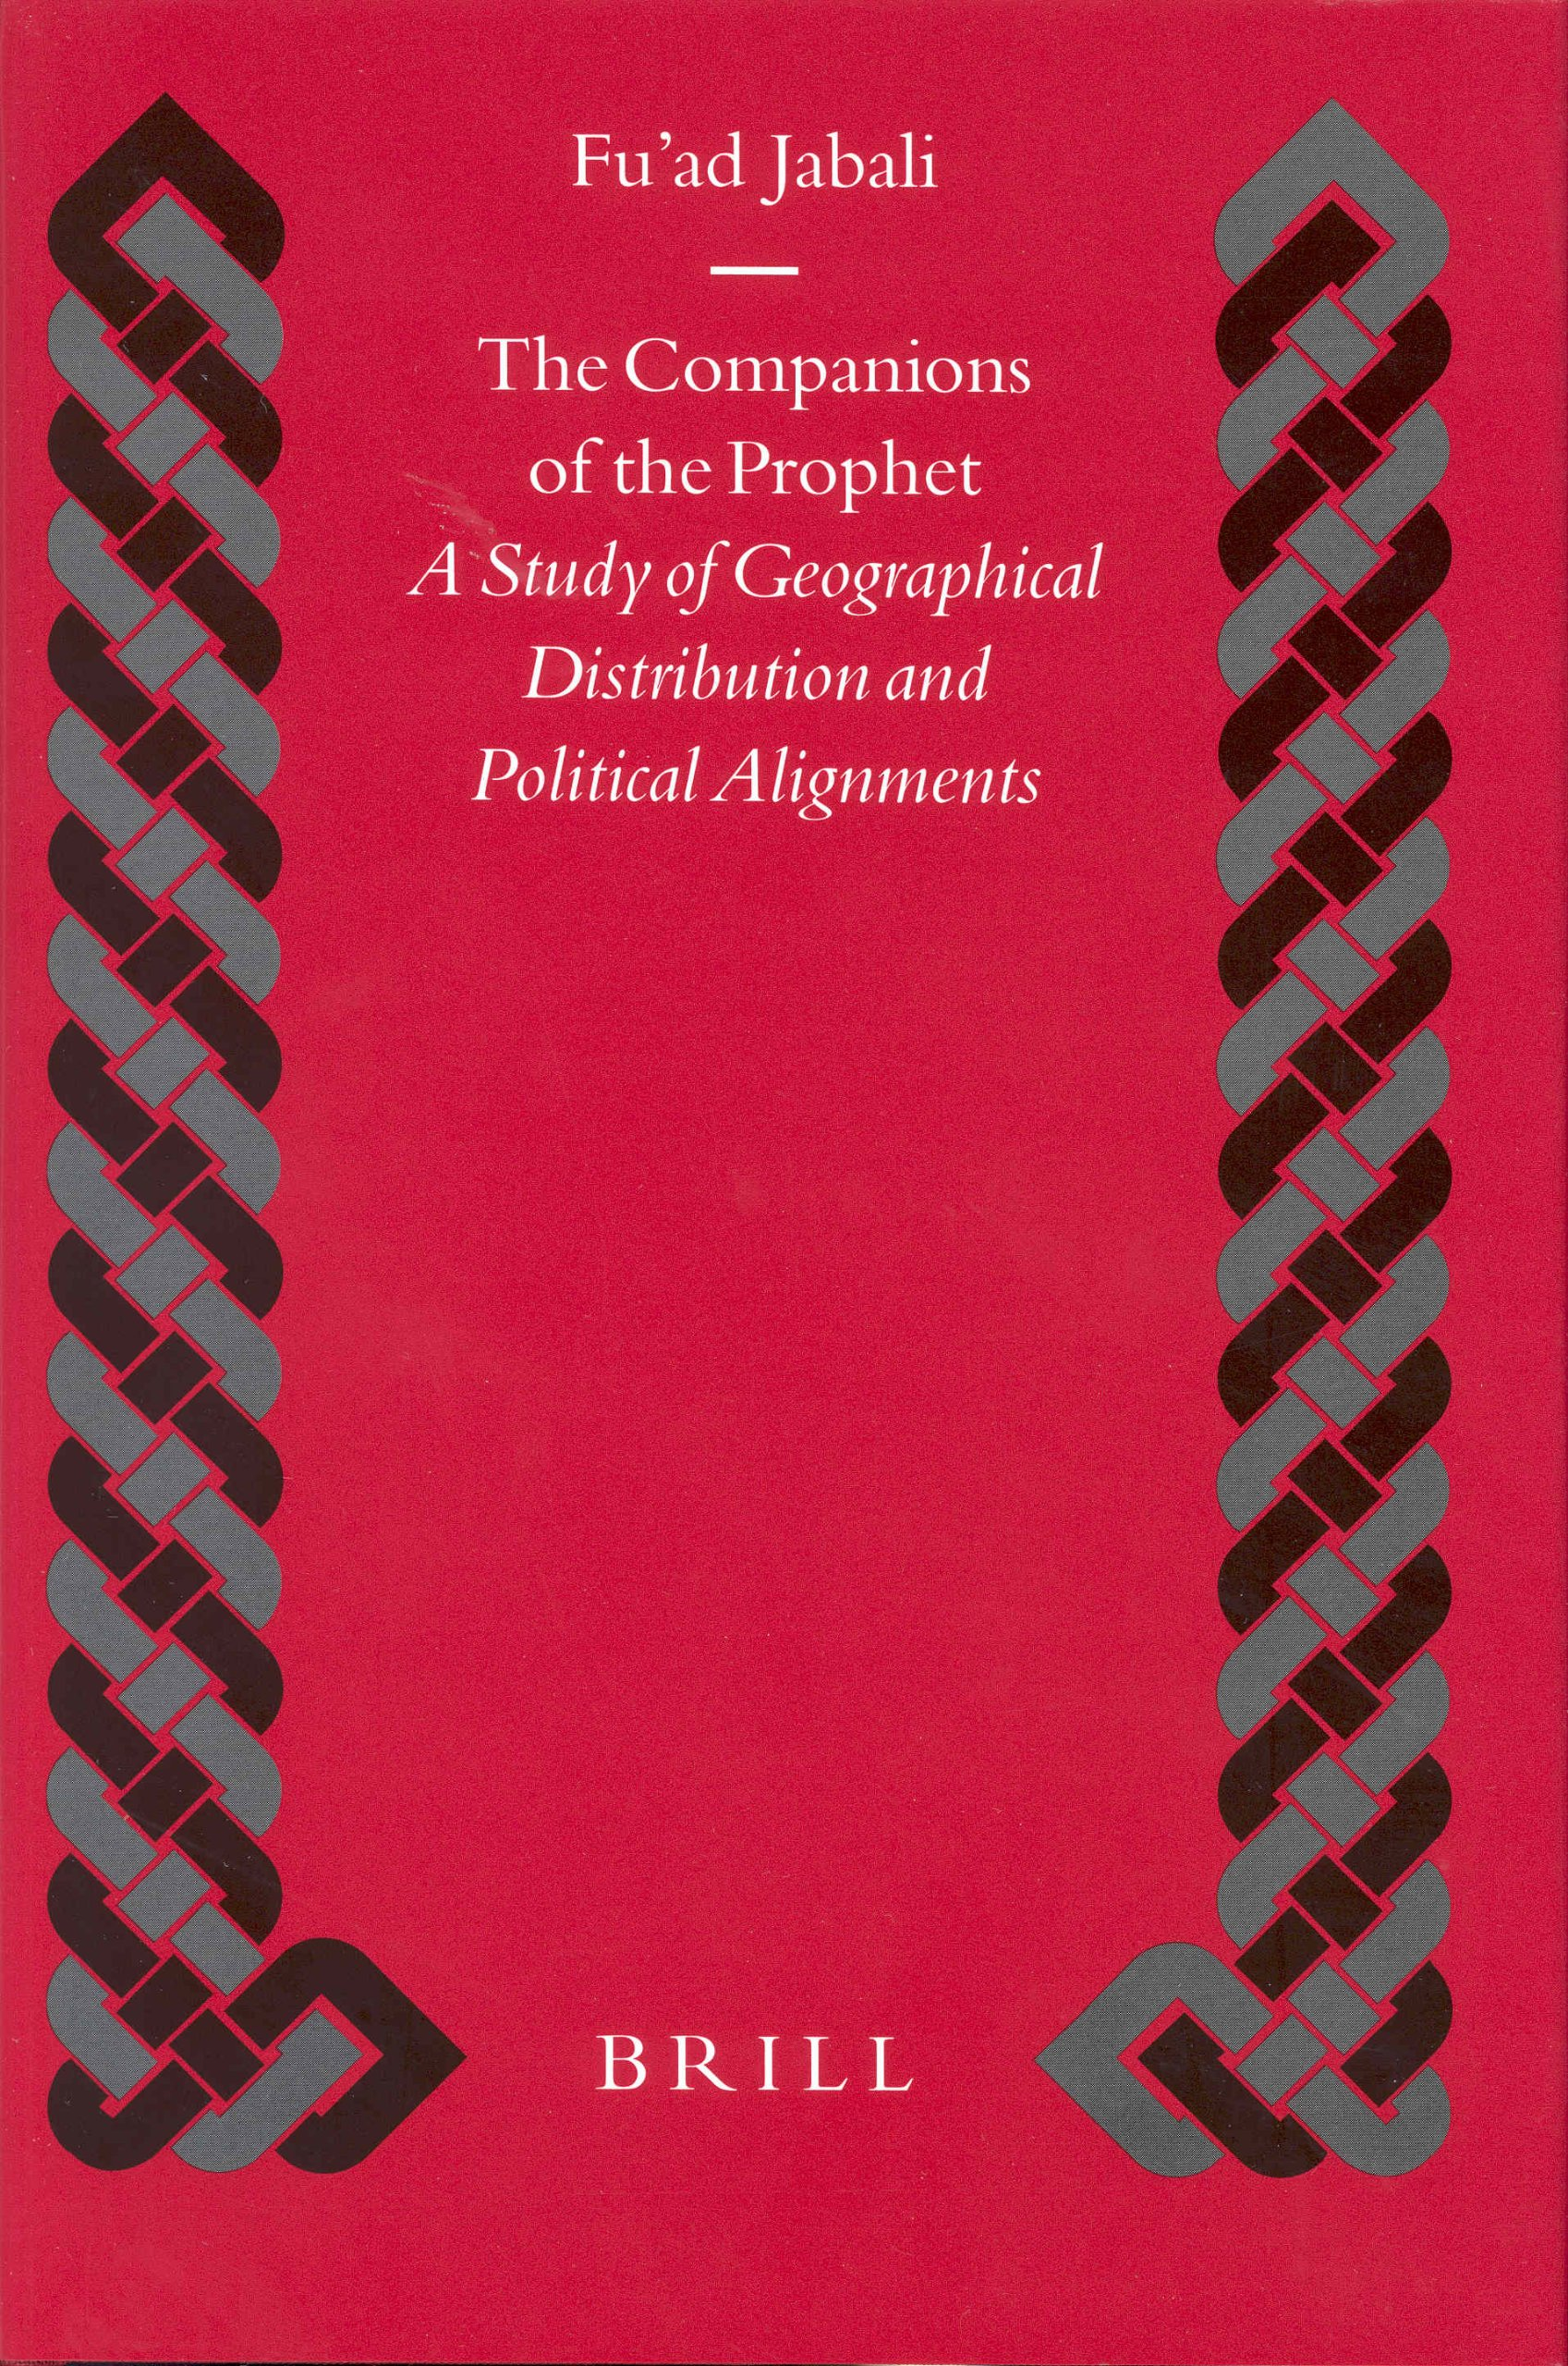 The Companions of the Prophet: A Study of Geographical Distribution and Political Alignment (Islamic History and Civilization)